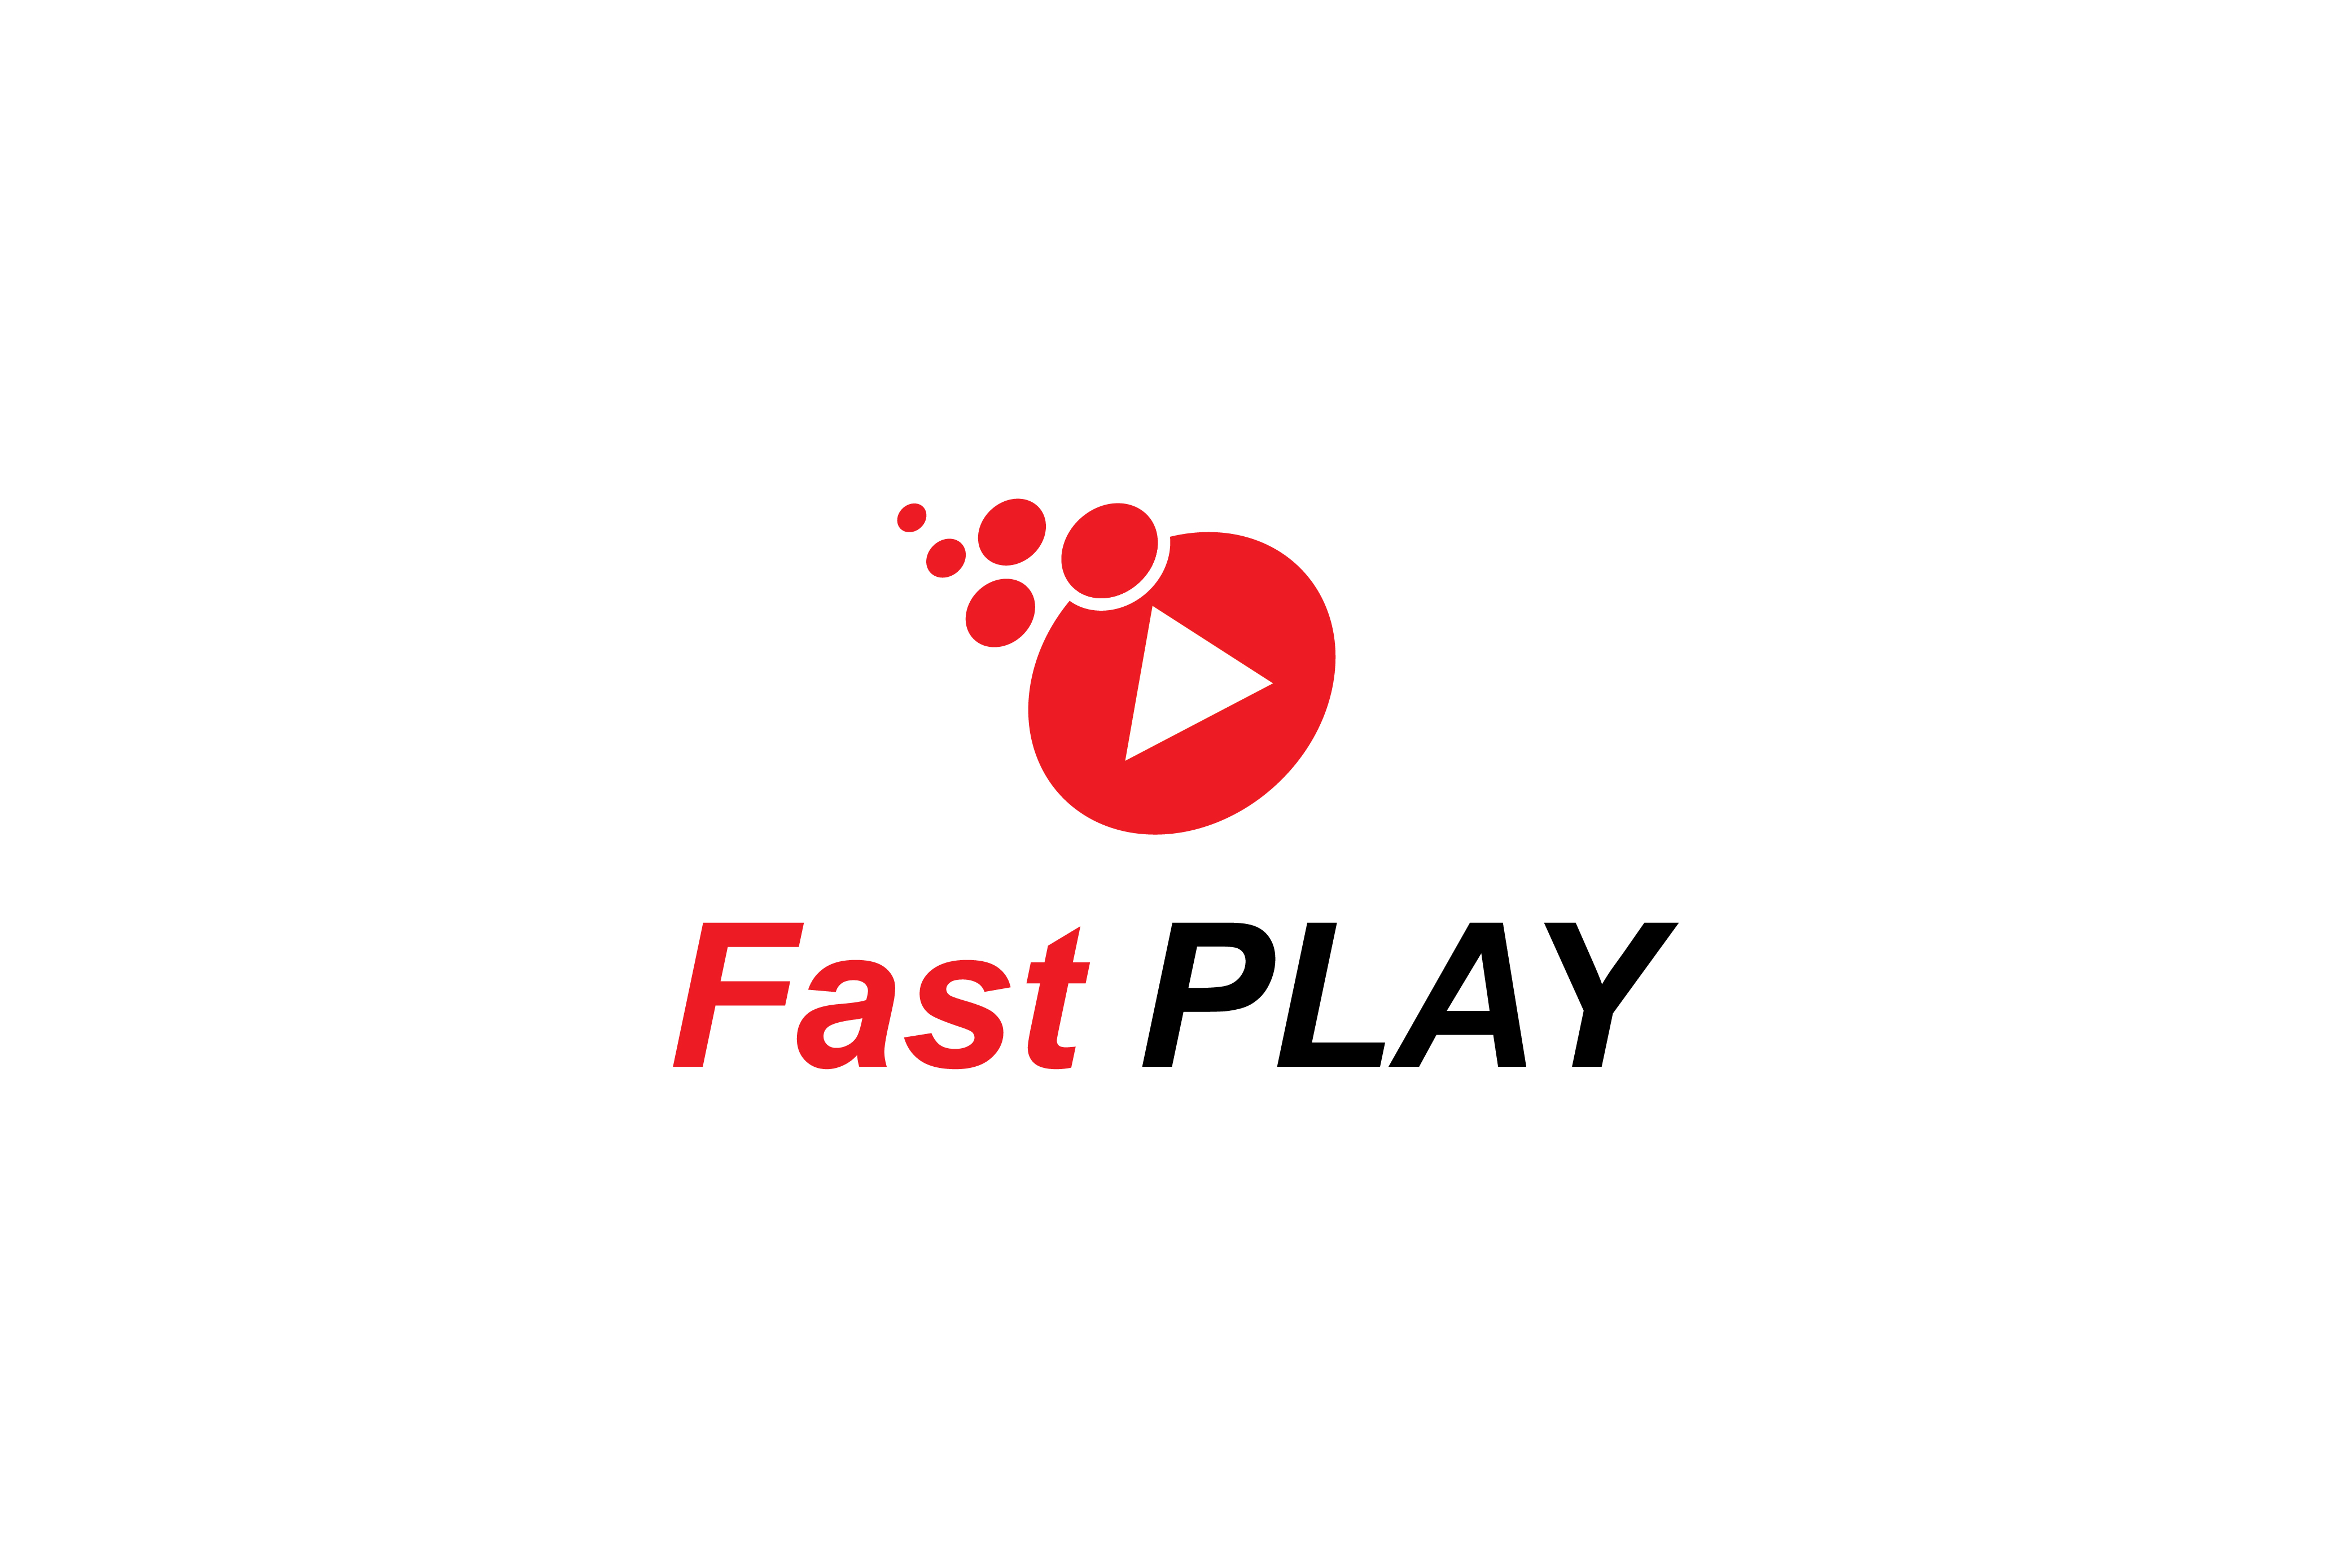 Download Free Fast Play Logo Design Graphic By Sabavector Creative Fabrica for Cricut Explore, Silhouette and other cutting machines.